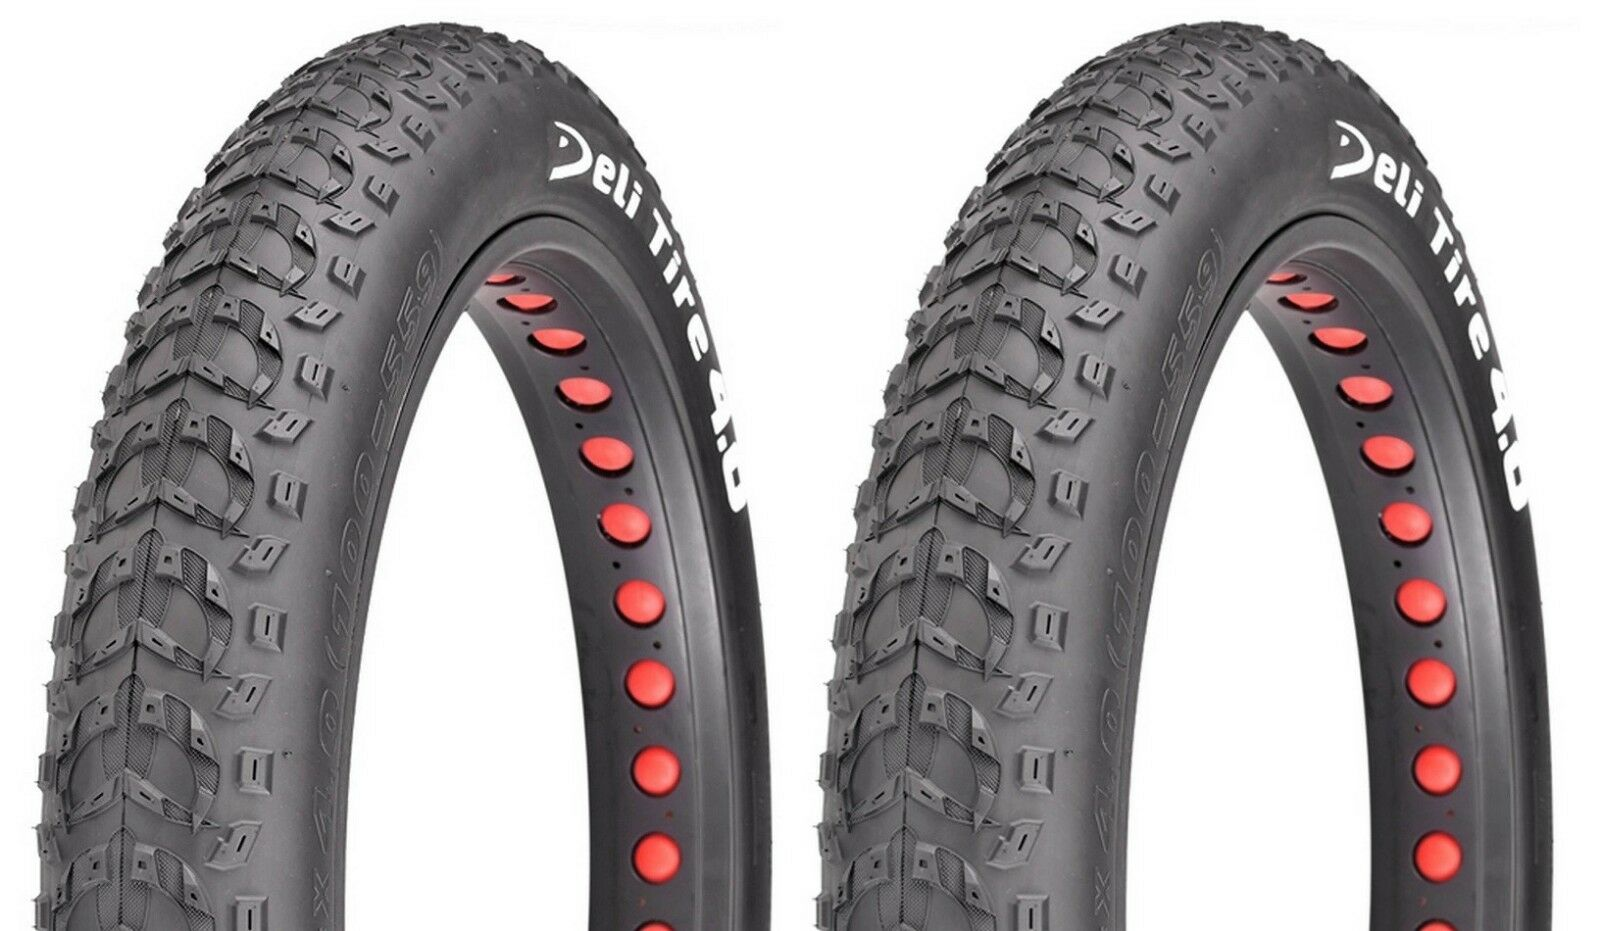 "Pair  of Deli Fat Bike Bicycle Tires 26x4.0"" Black Big Bud"